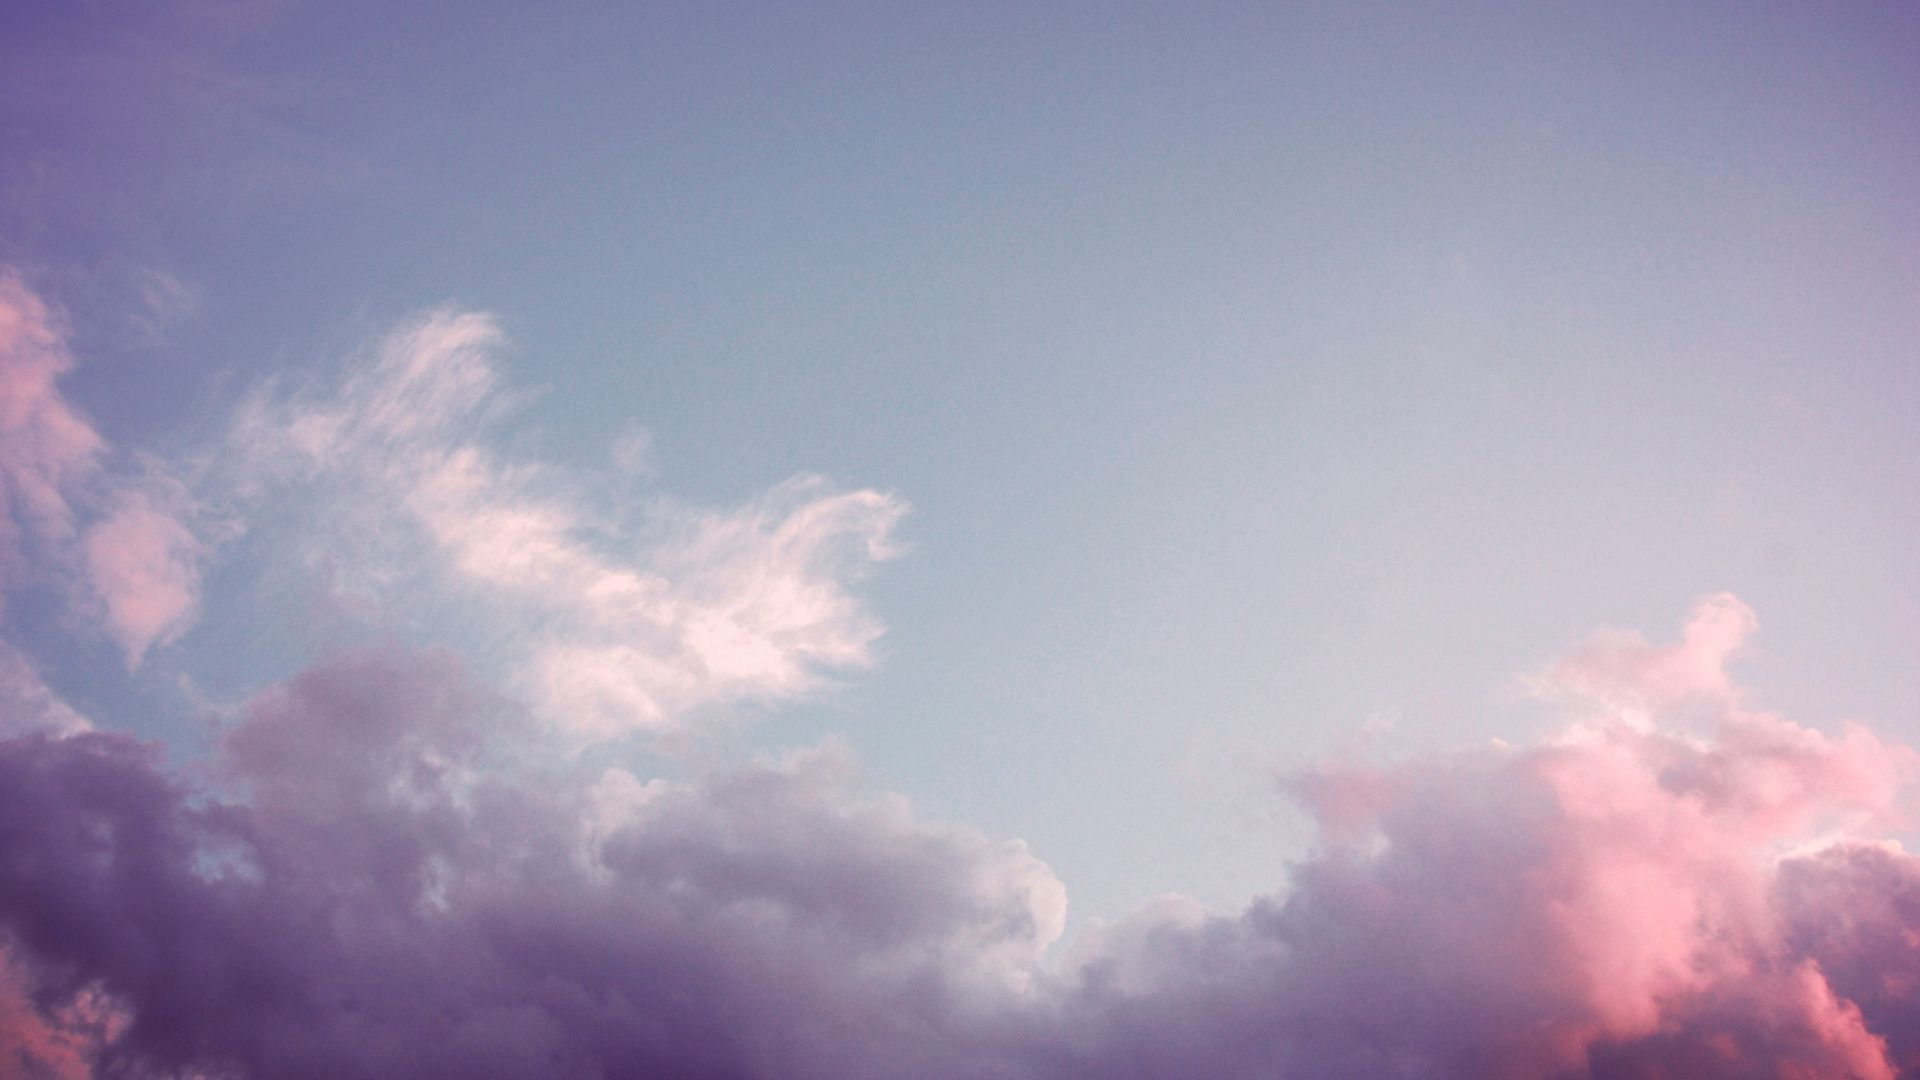 Aesthetic Cloud Wallpaper Pc